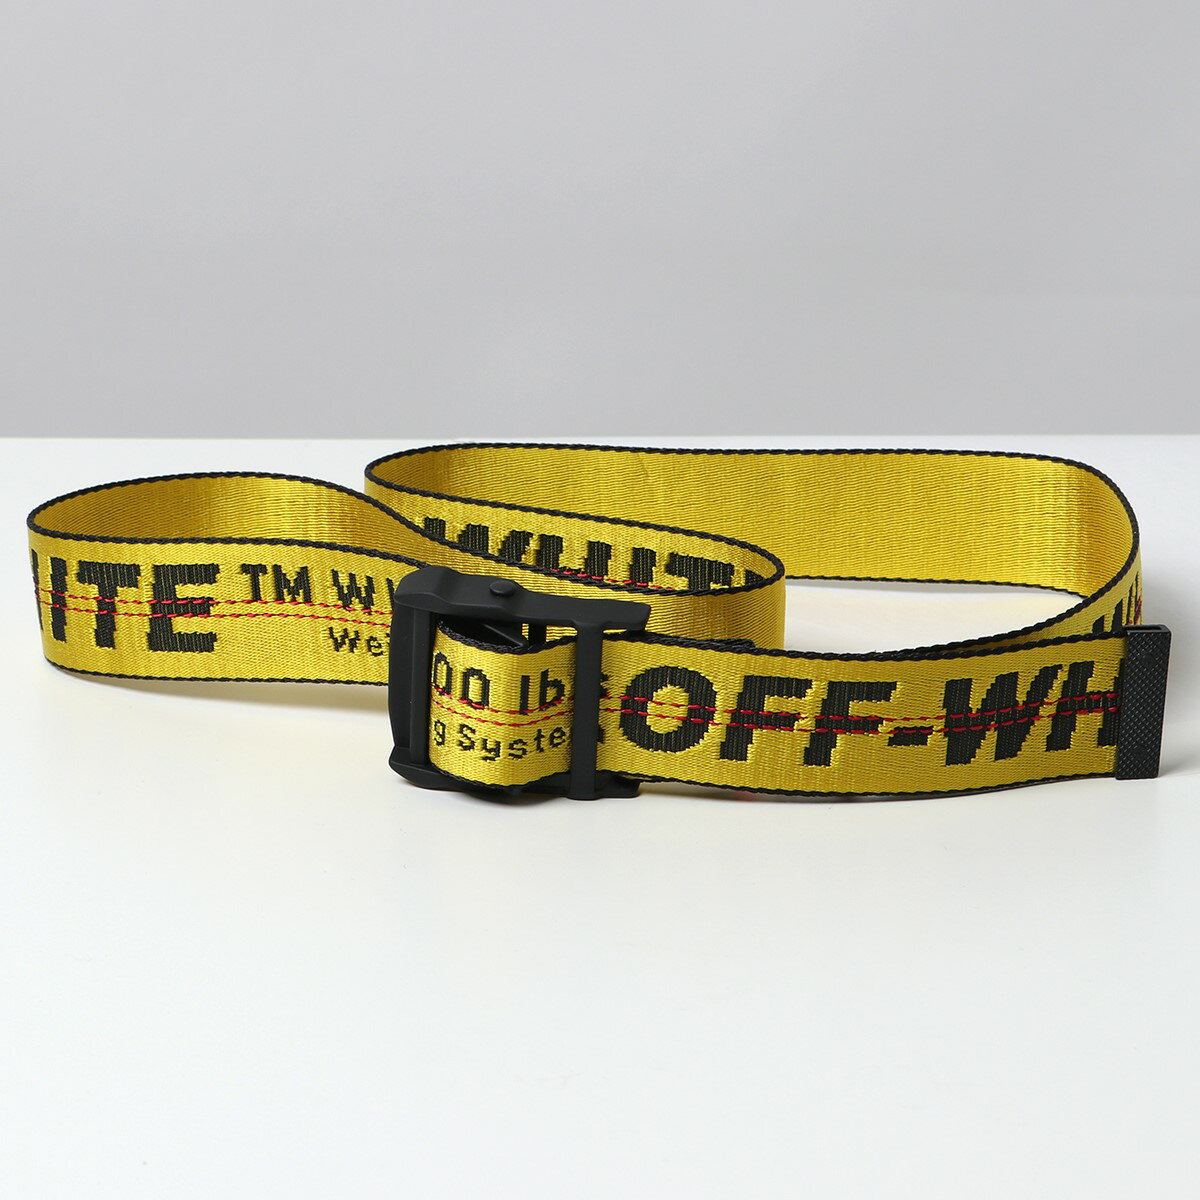 ベルト・サスペンダー, メンズベルト 500OFF28OFF-WHITE VIRGIL ABLOH OMRB021R21FAB001 CLASSIC INDUSTRIAL BELT SH 3.5 1810YELLOW-BLACK